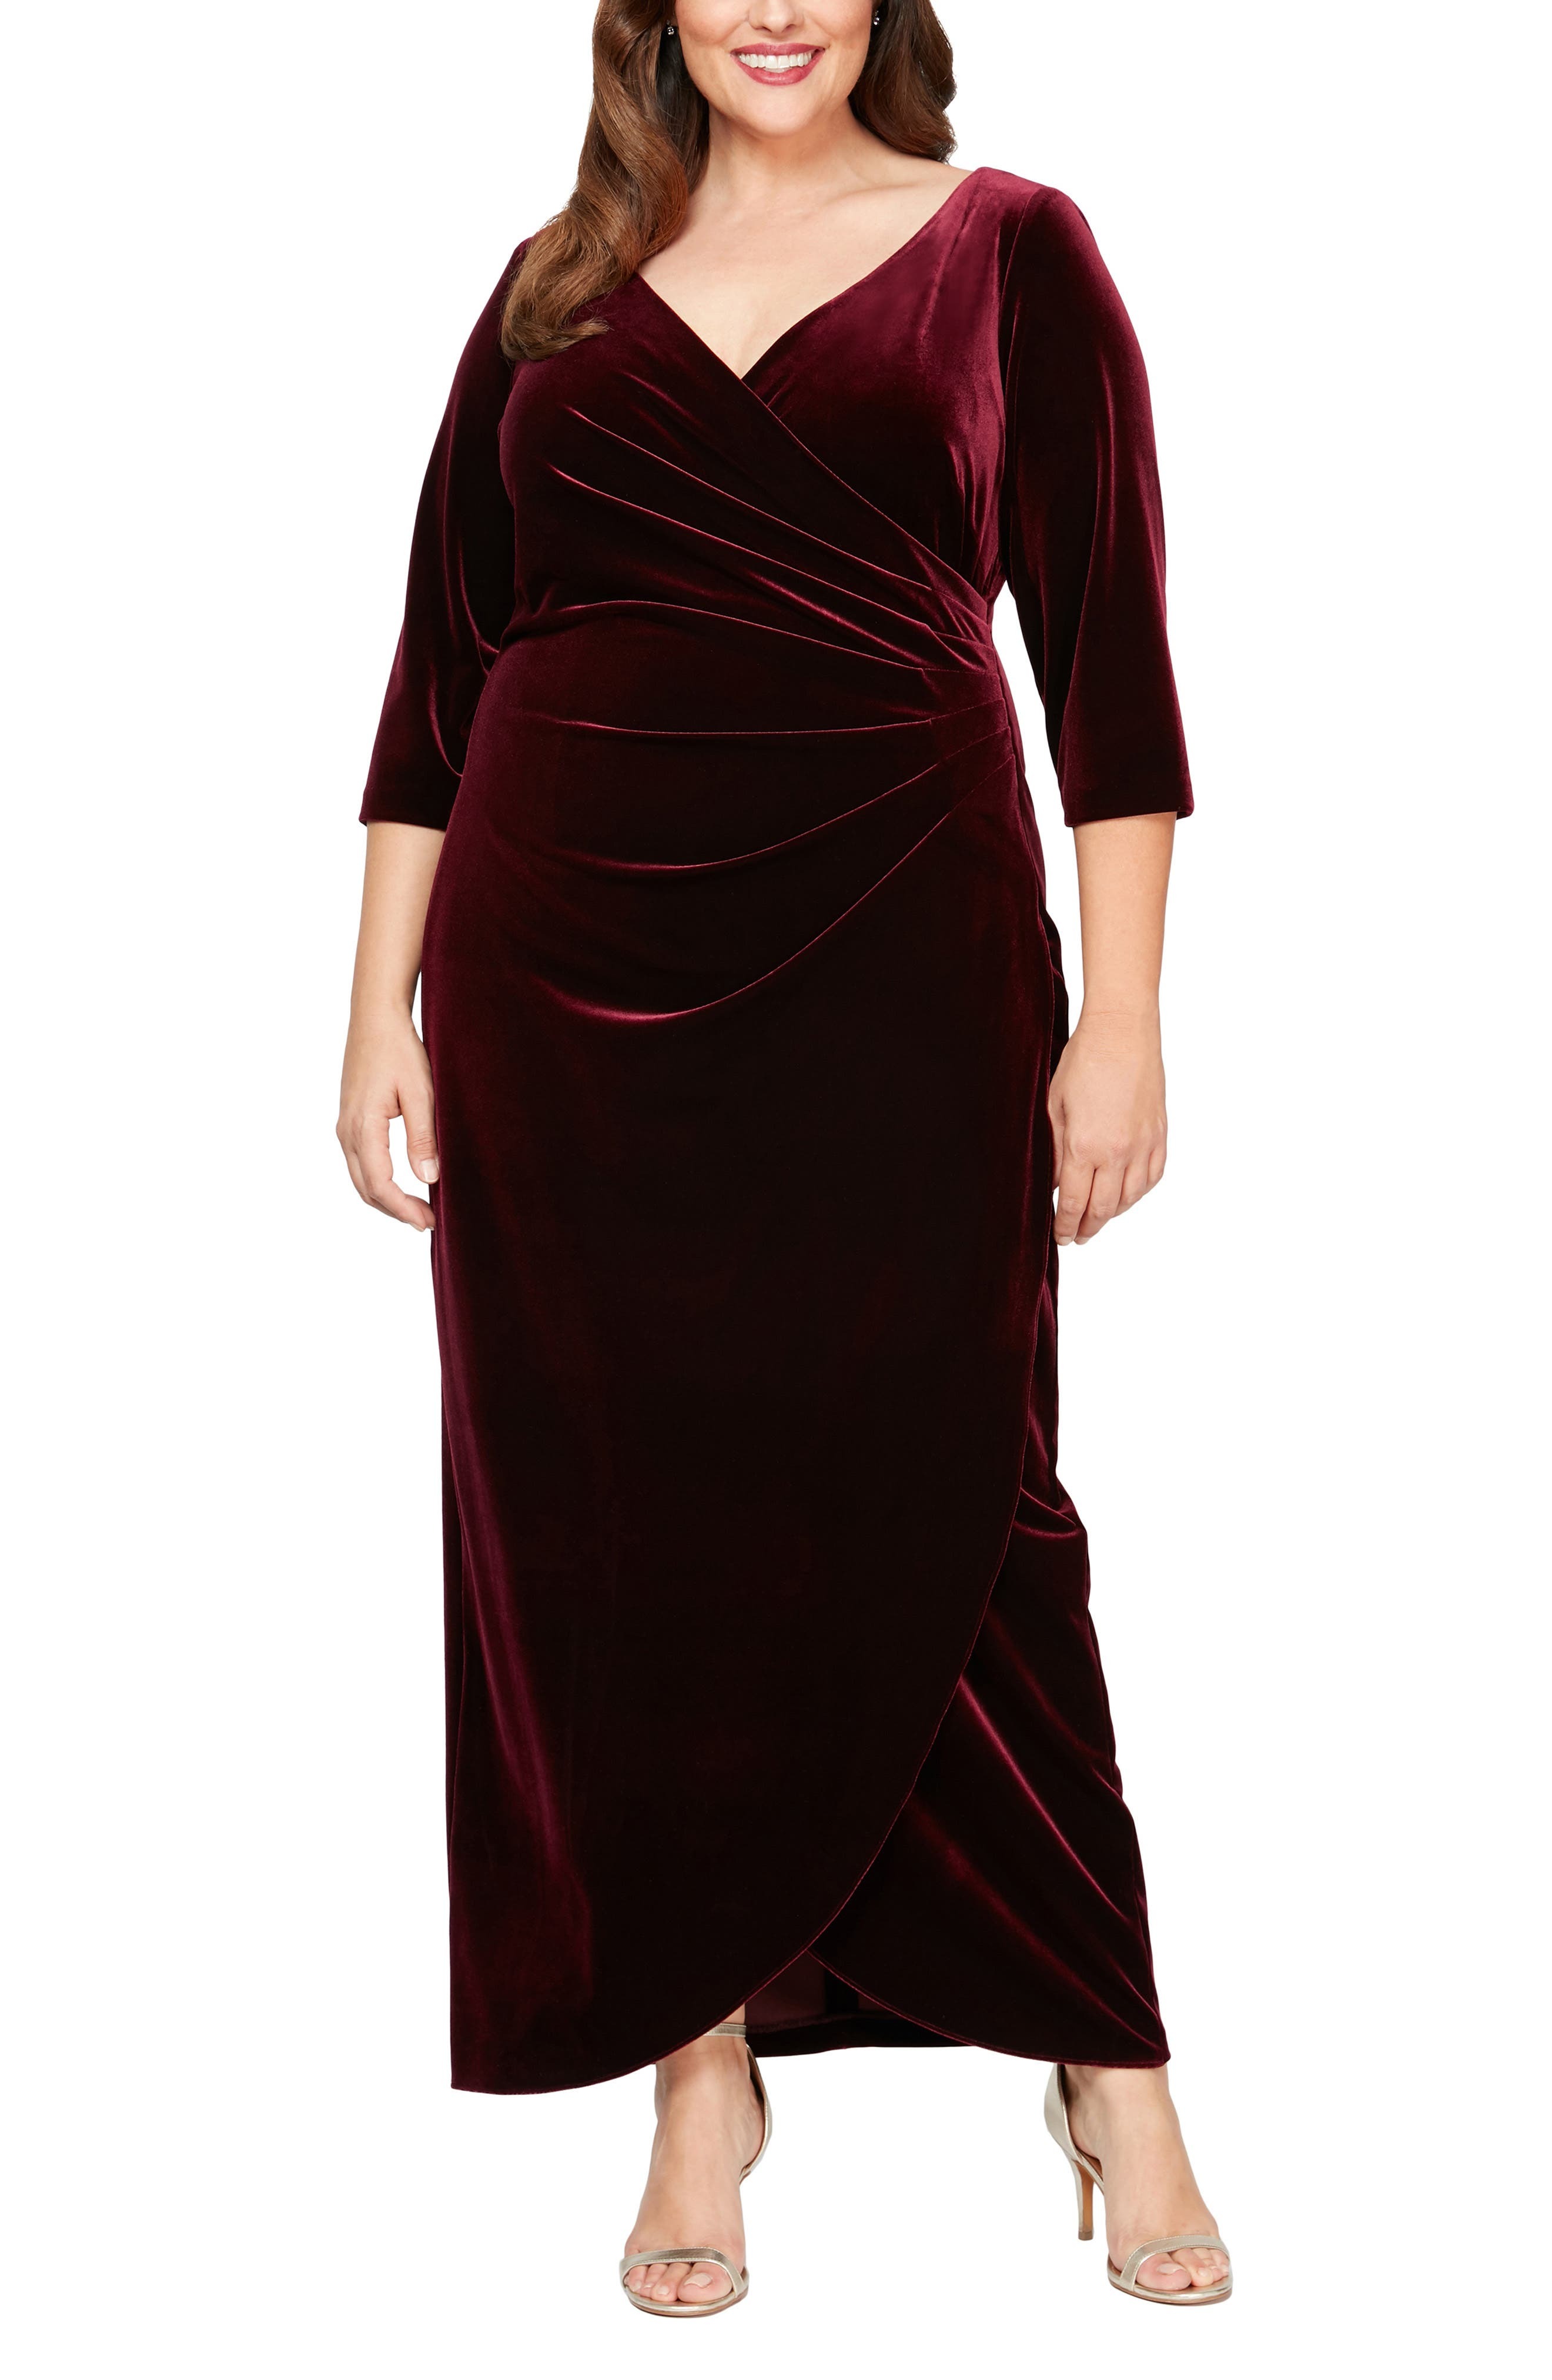 1950s History of Prom, Party, and Formal Dresses Plus Size Womens Alex Evenings Velvet Dress $125.30 AT vintagedancer.com